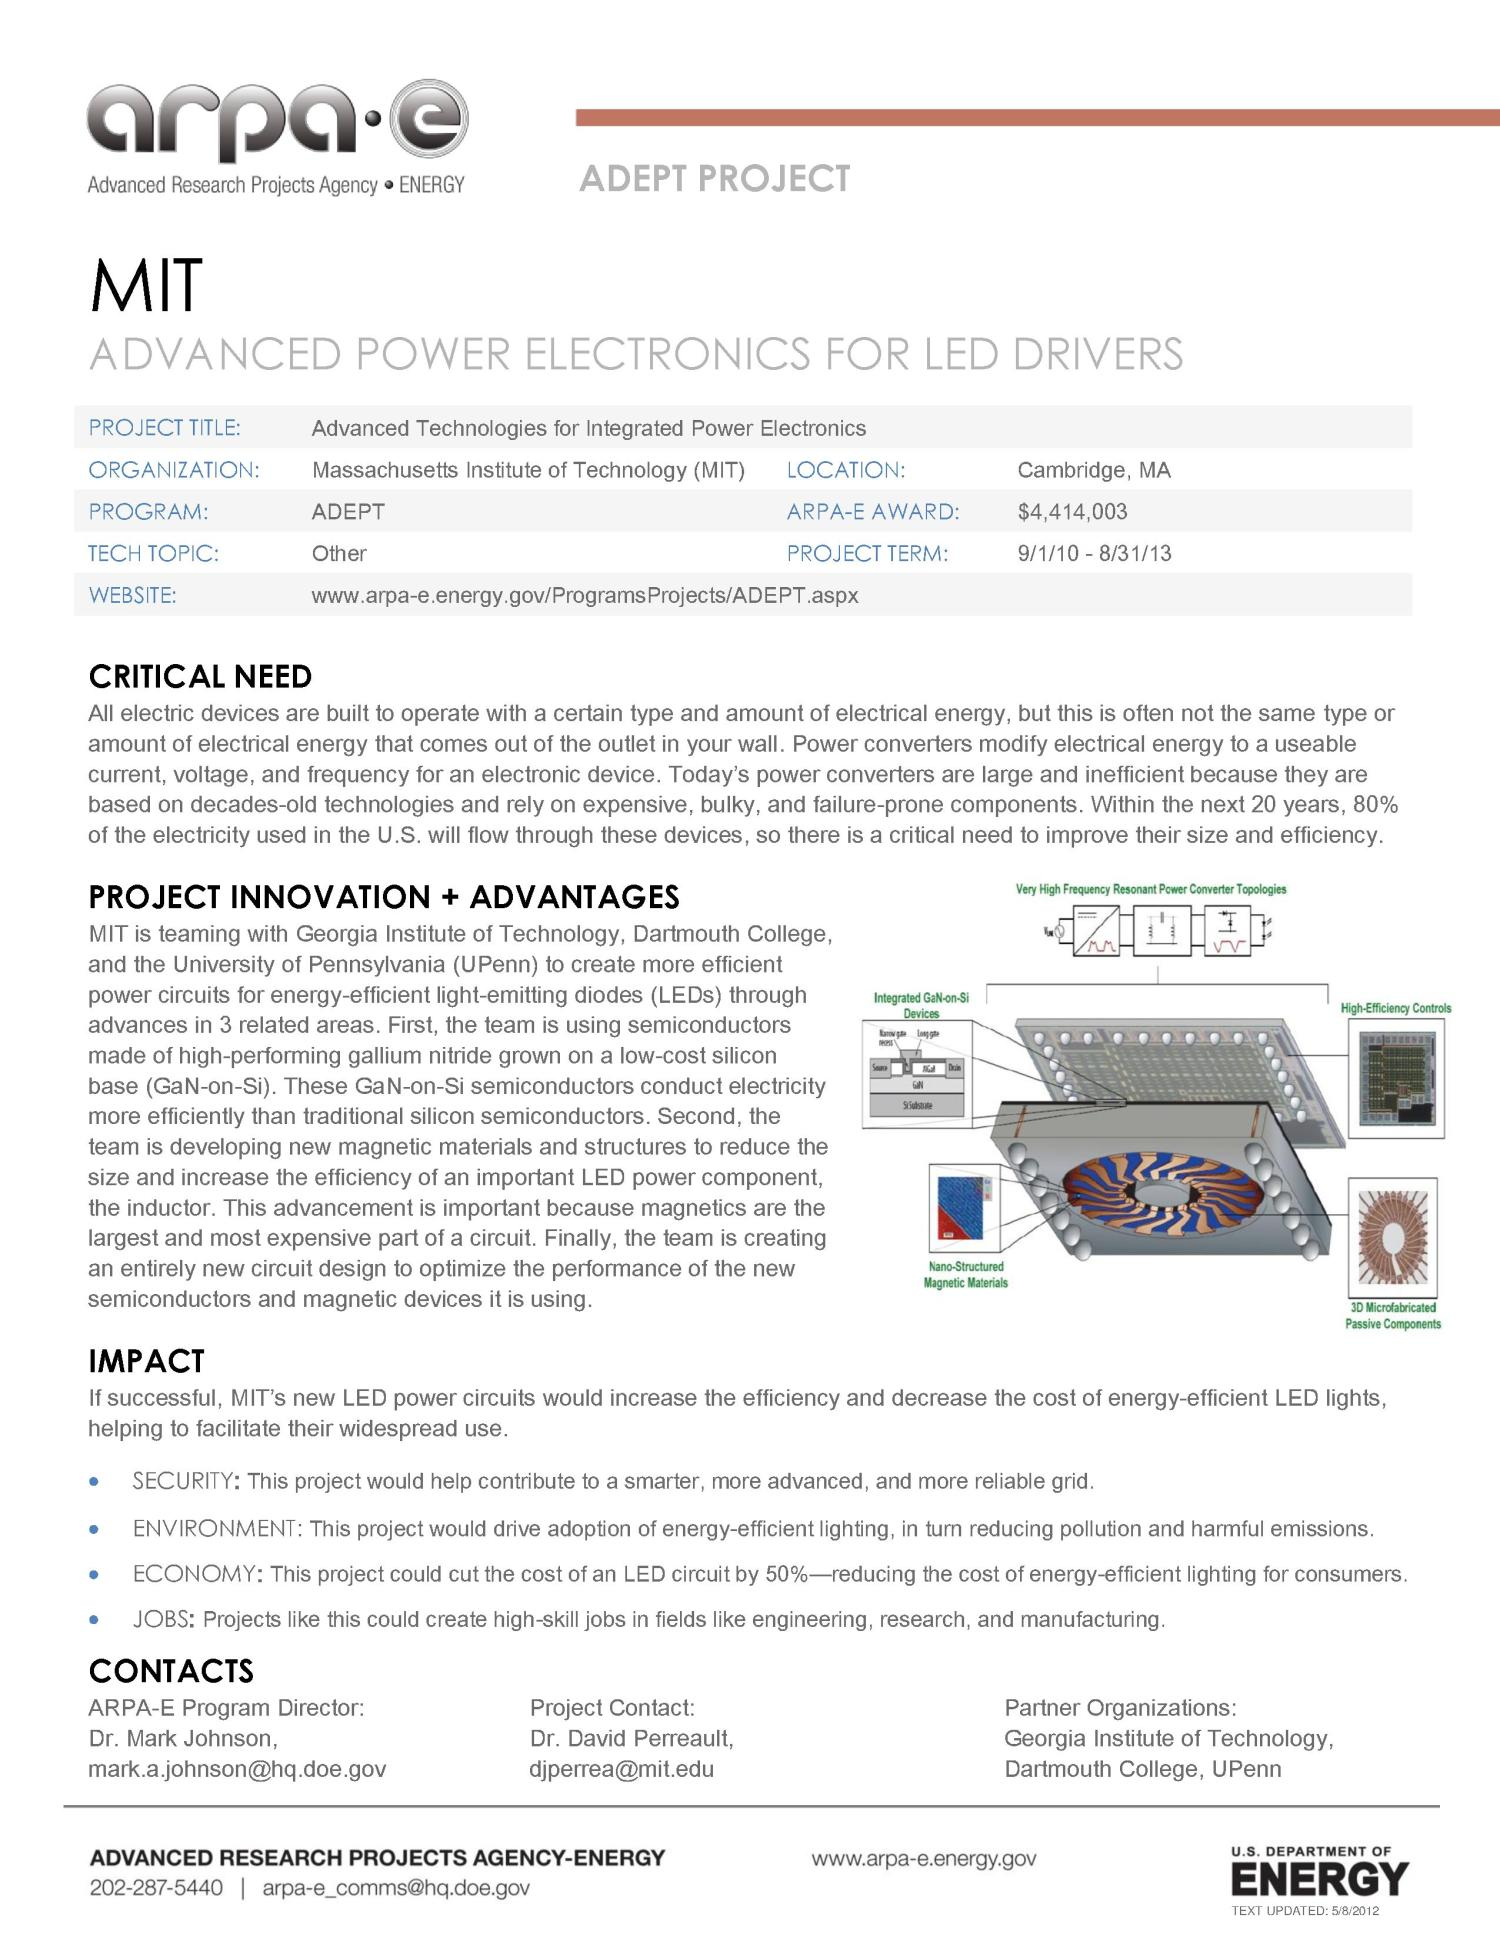 Advanced Power Electronics For Led Drivers Digital Library Circuit And Projects